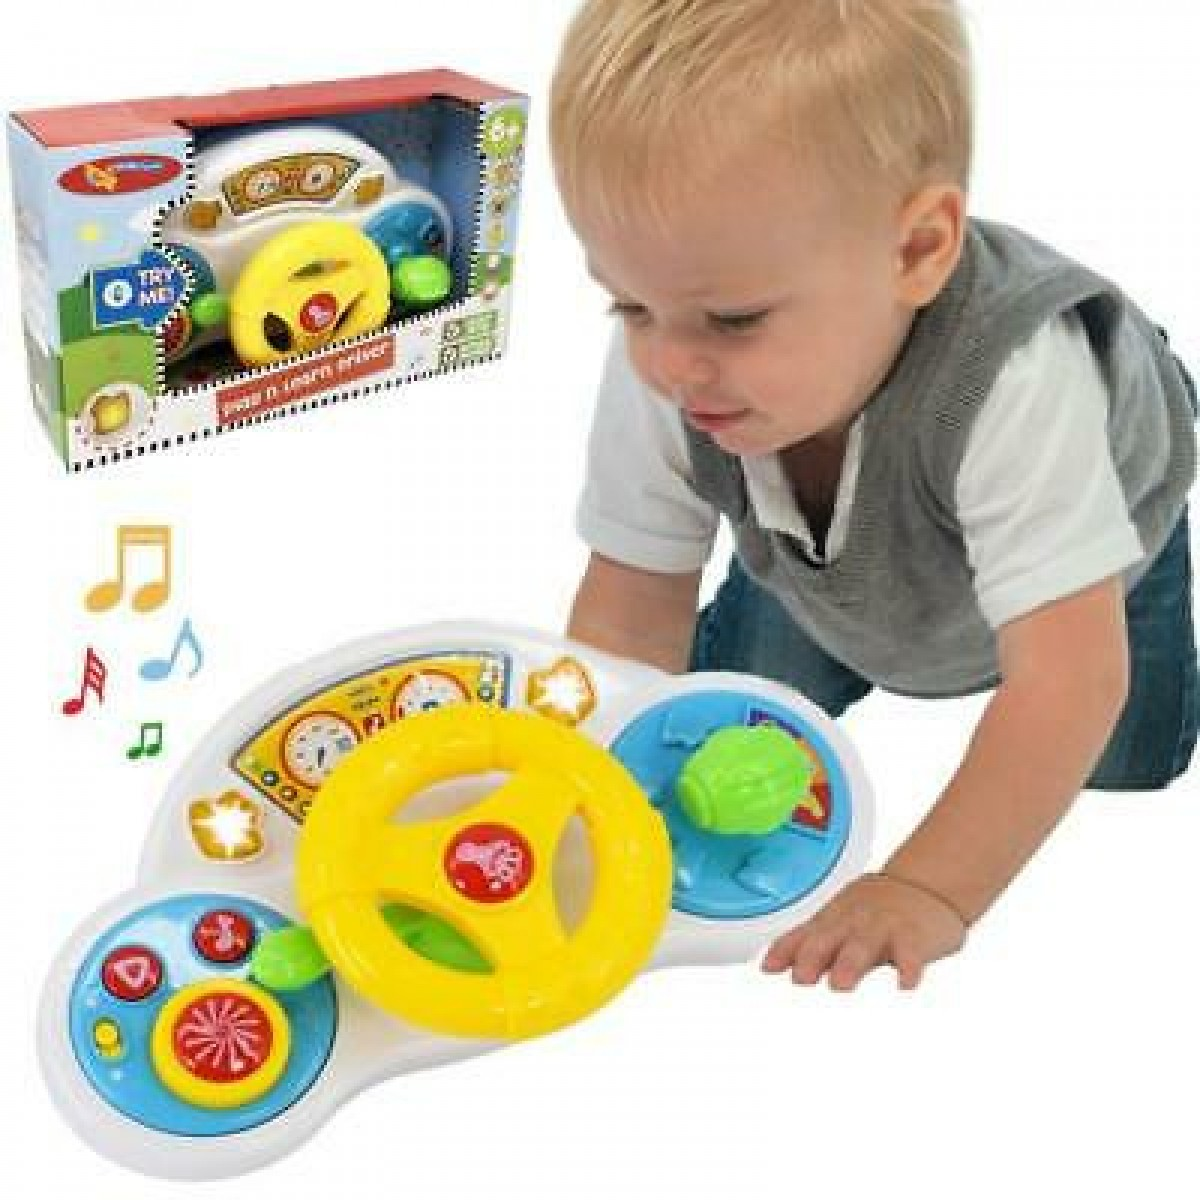 Infunbebe Play N Learn Driver With Strap - Musical Sterring Wheel